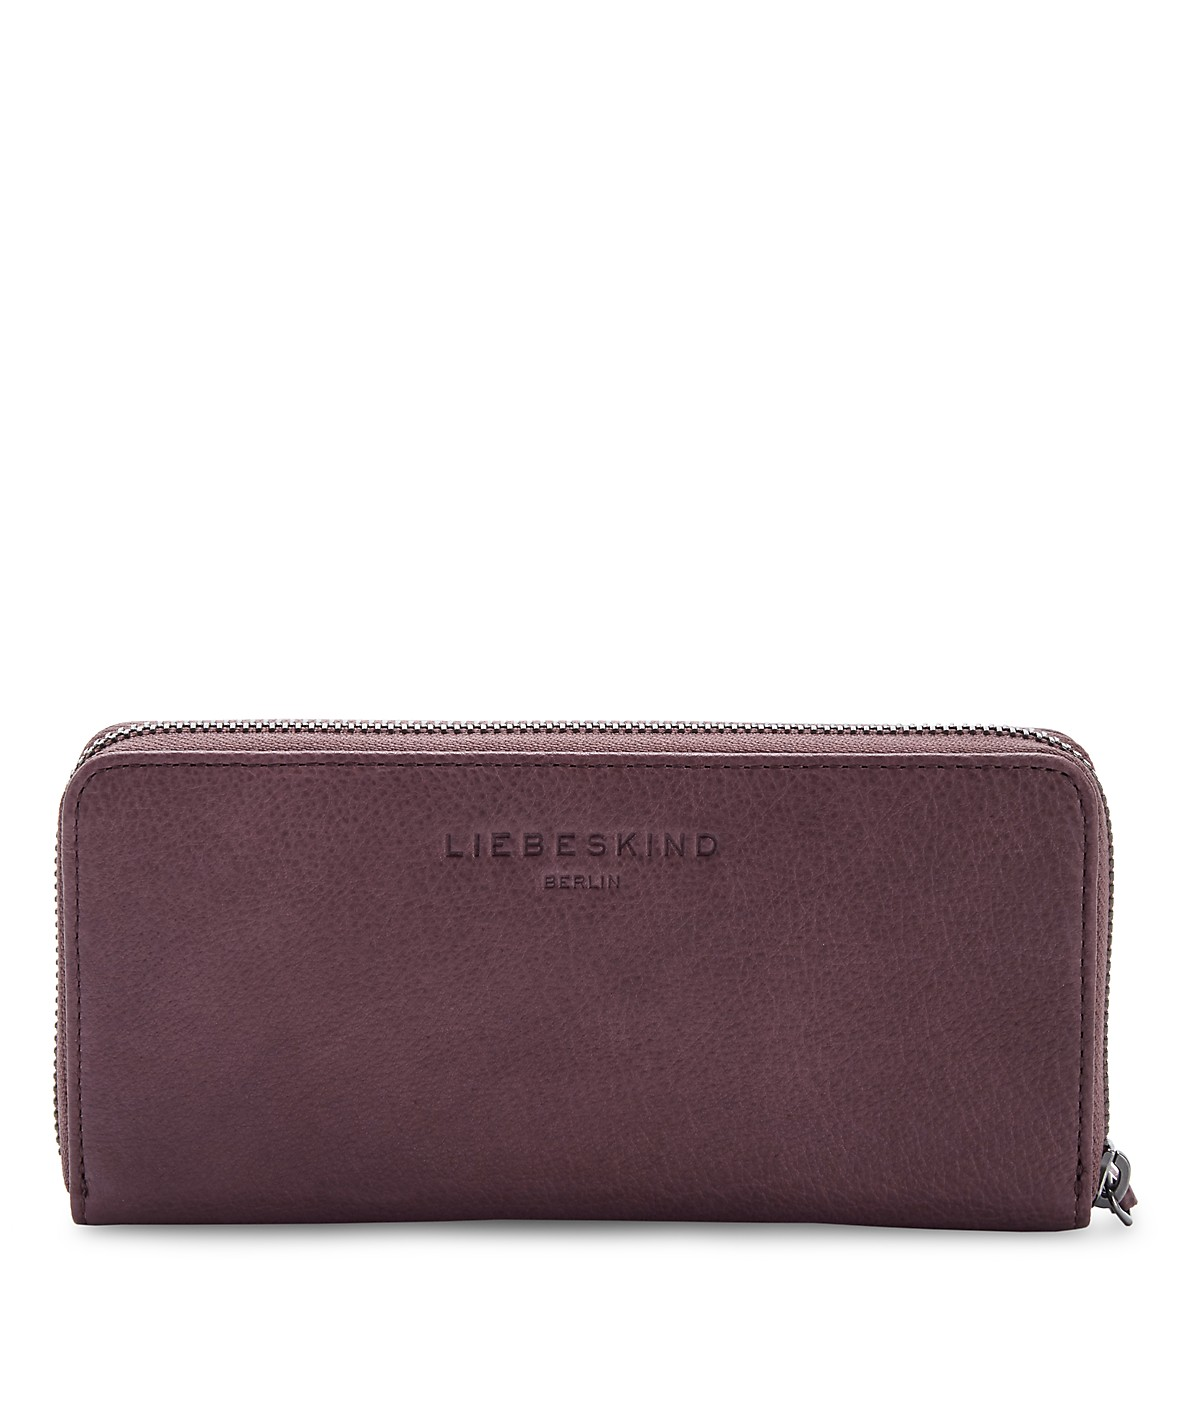 GigiF7 purse from liebeskind